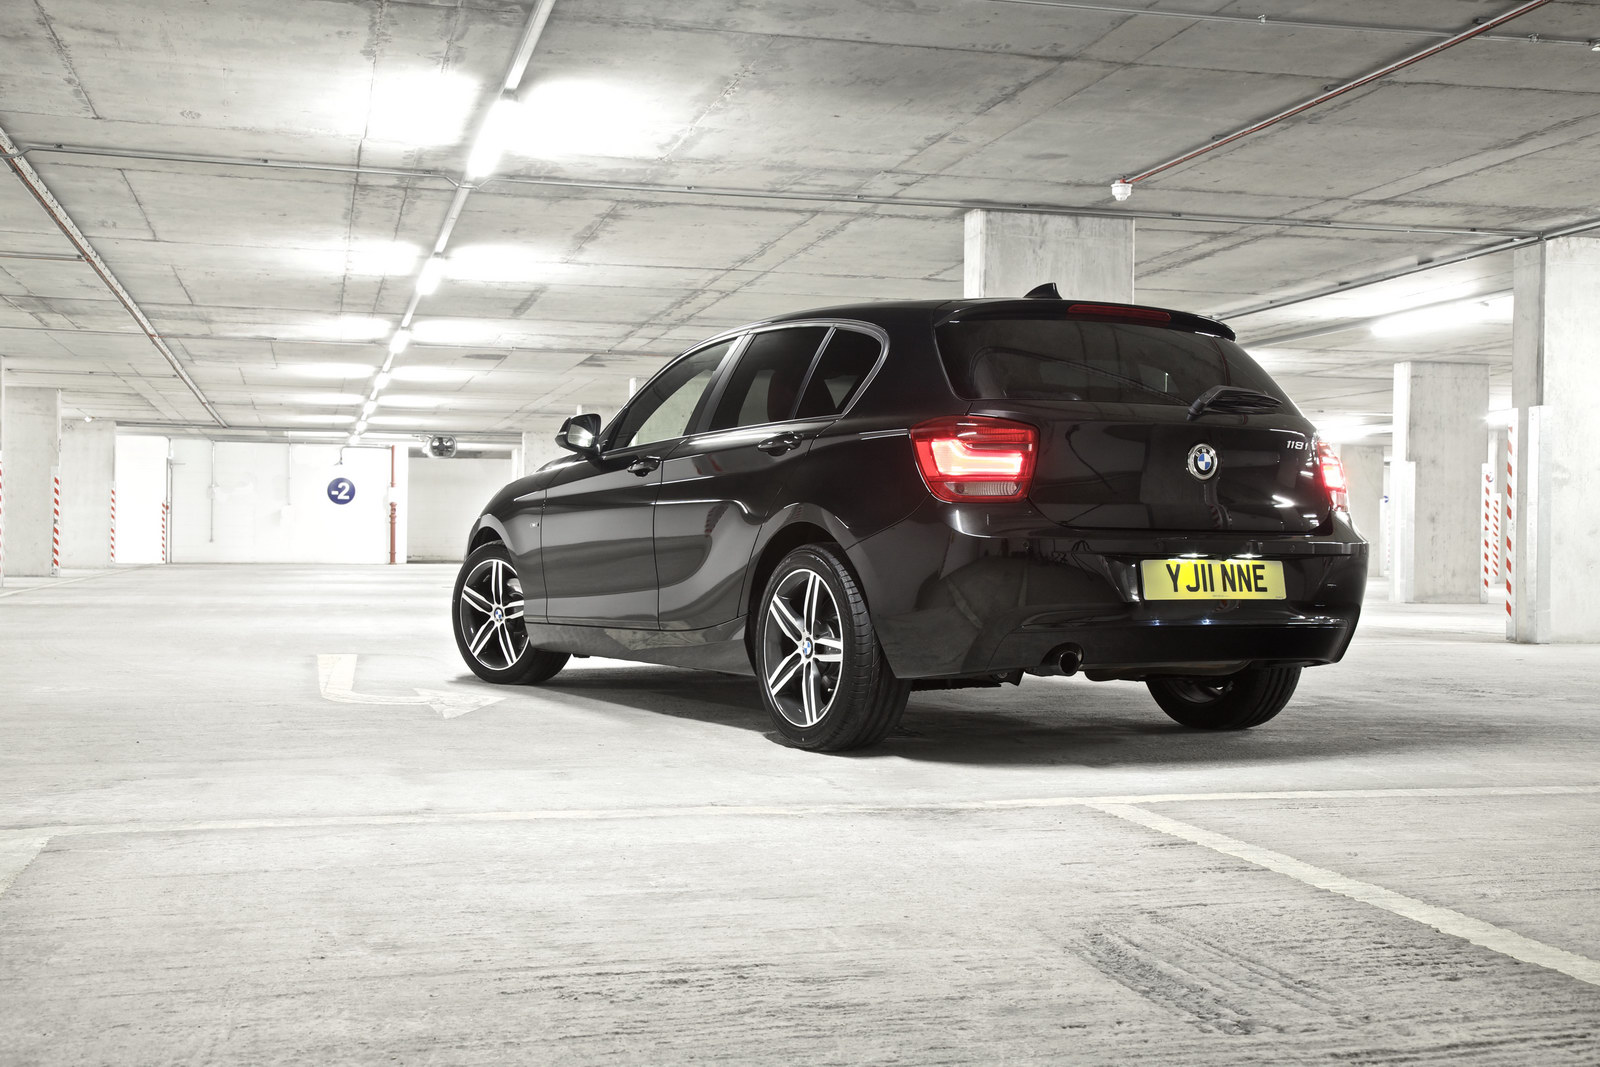 2011 BMW 1 Series 3 BMW reveals pricing of the 2011 latest 1 Series Hatch in UK